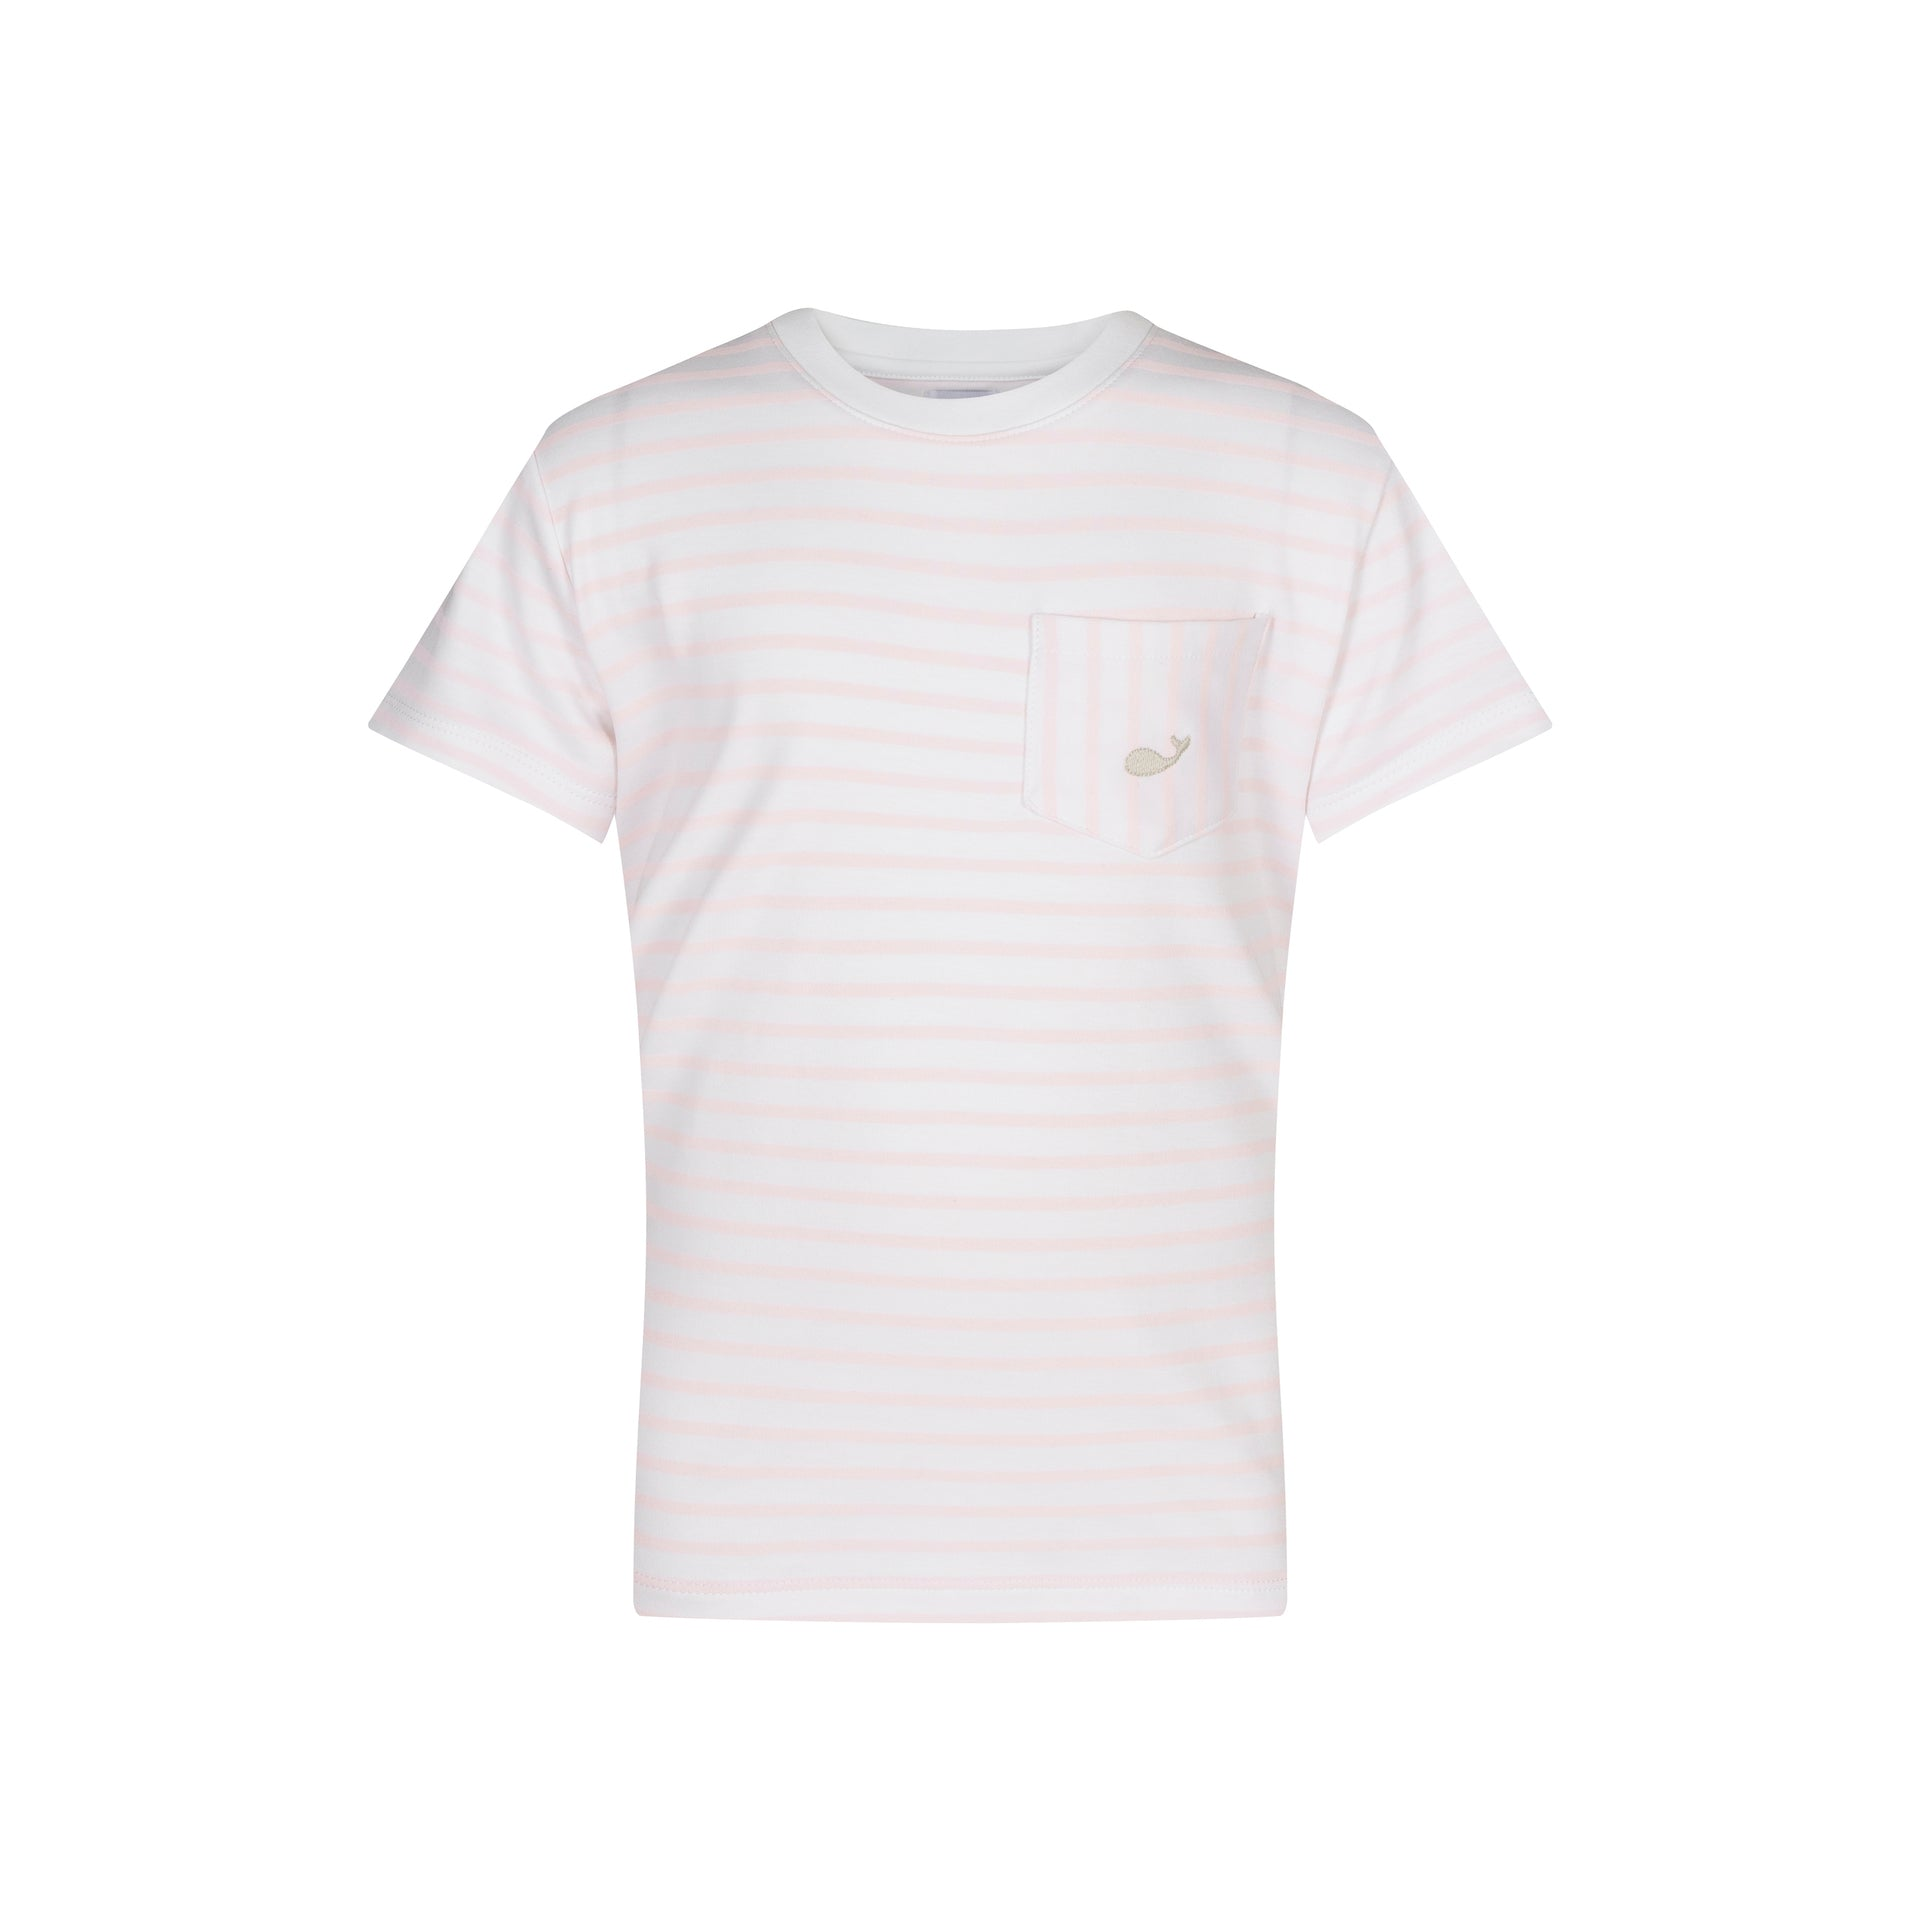 Pima Cotton T-Shirts